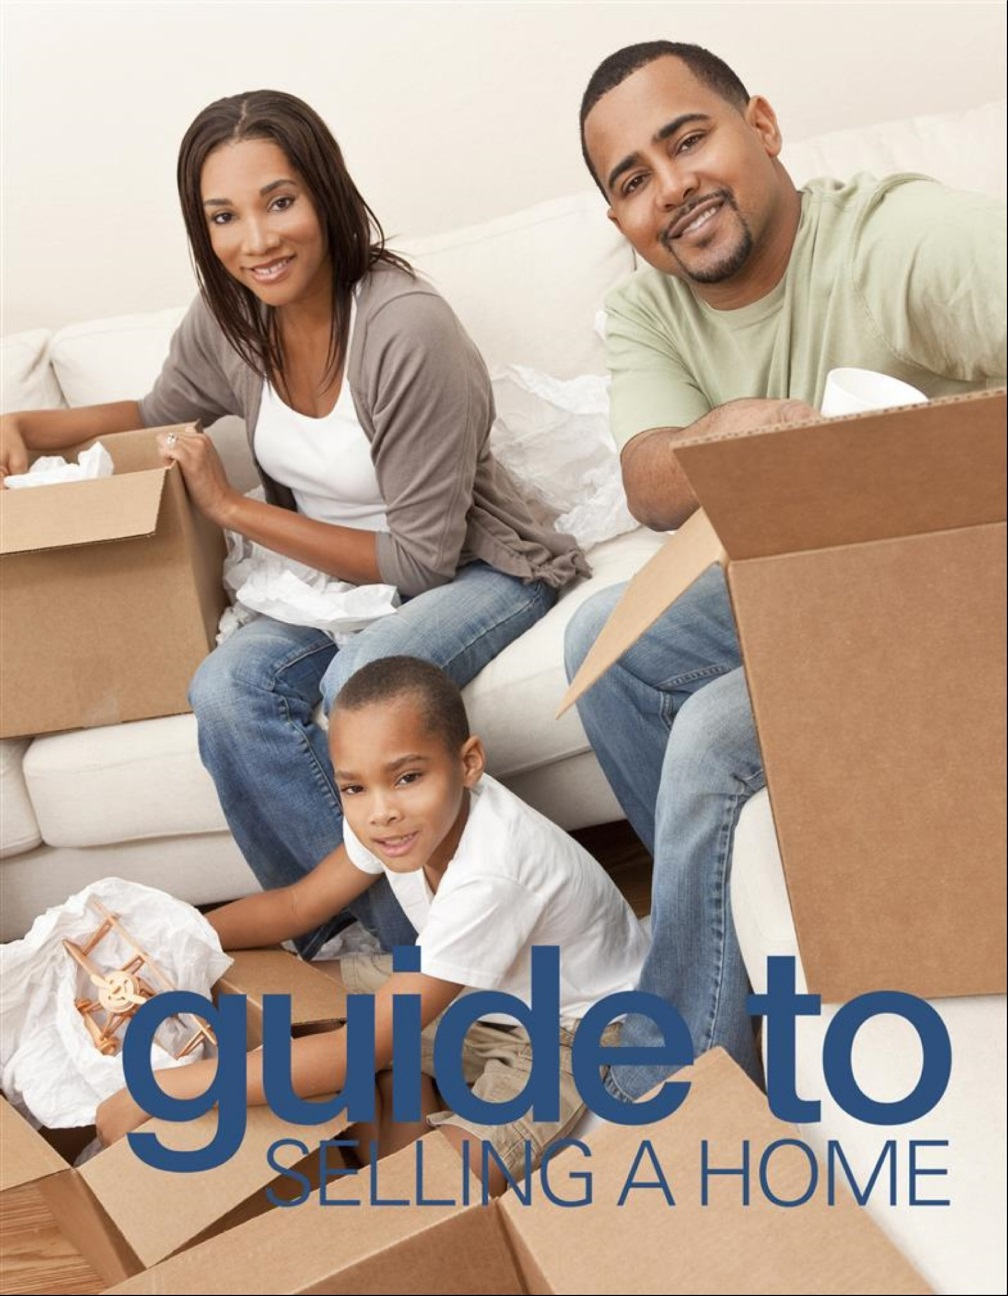 Free Home Selling Guide